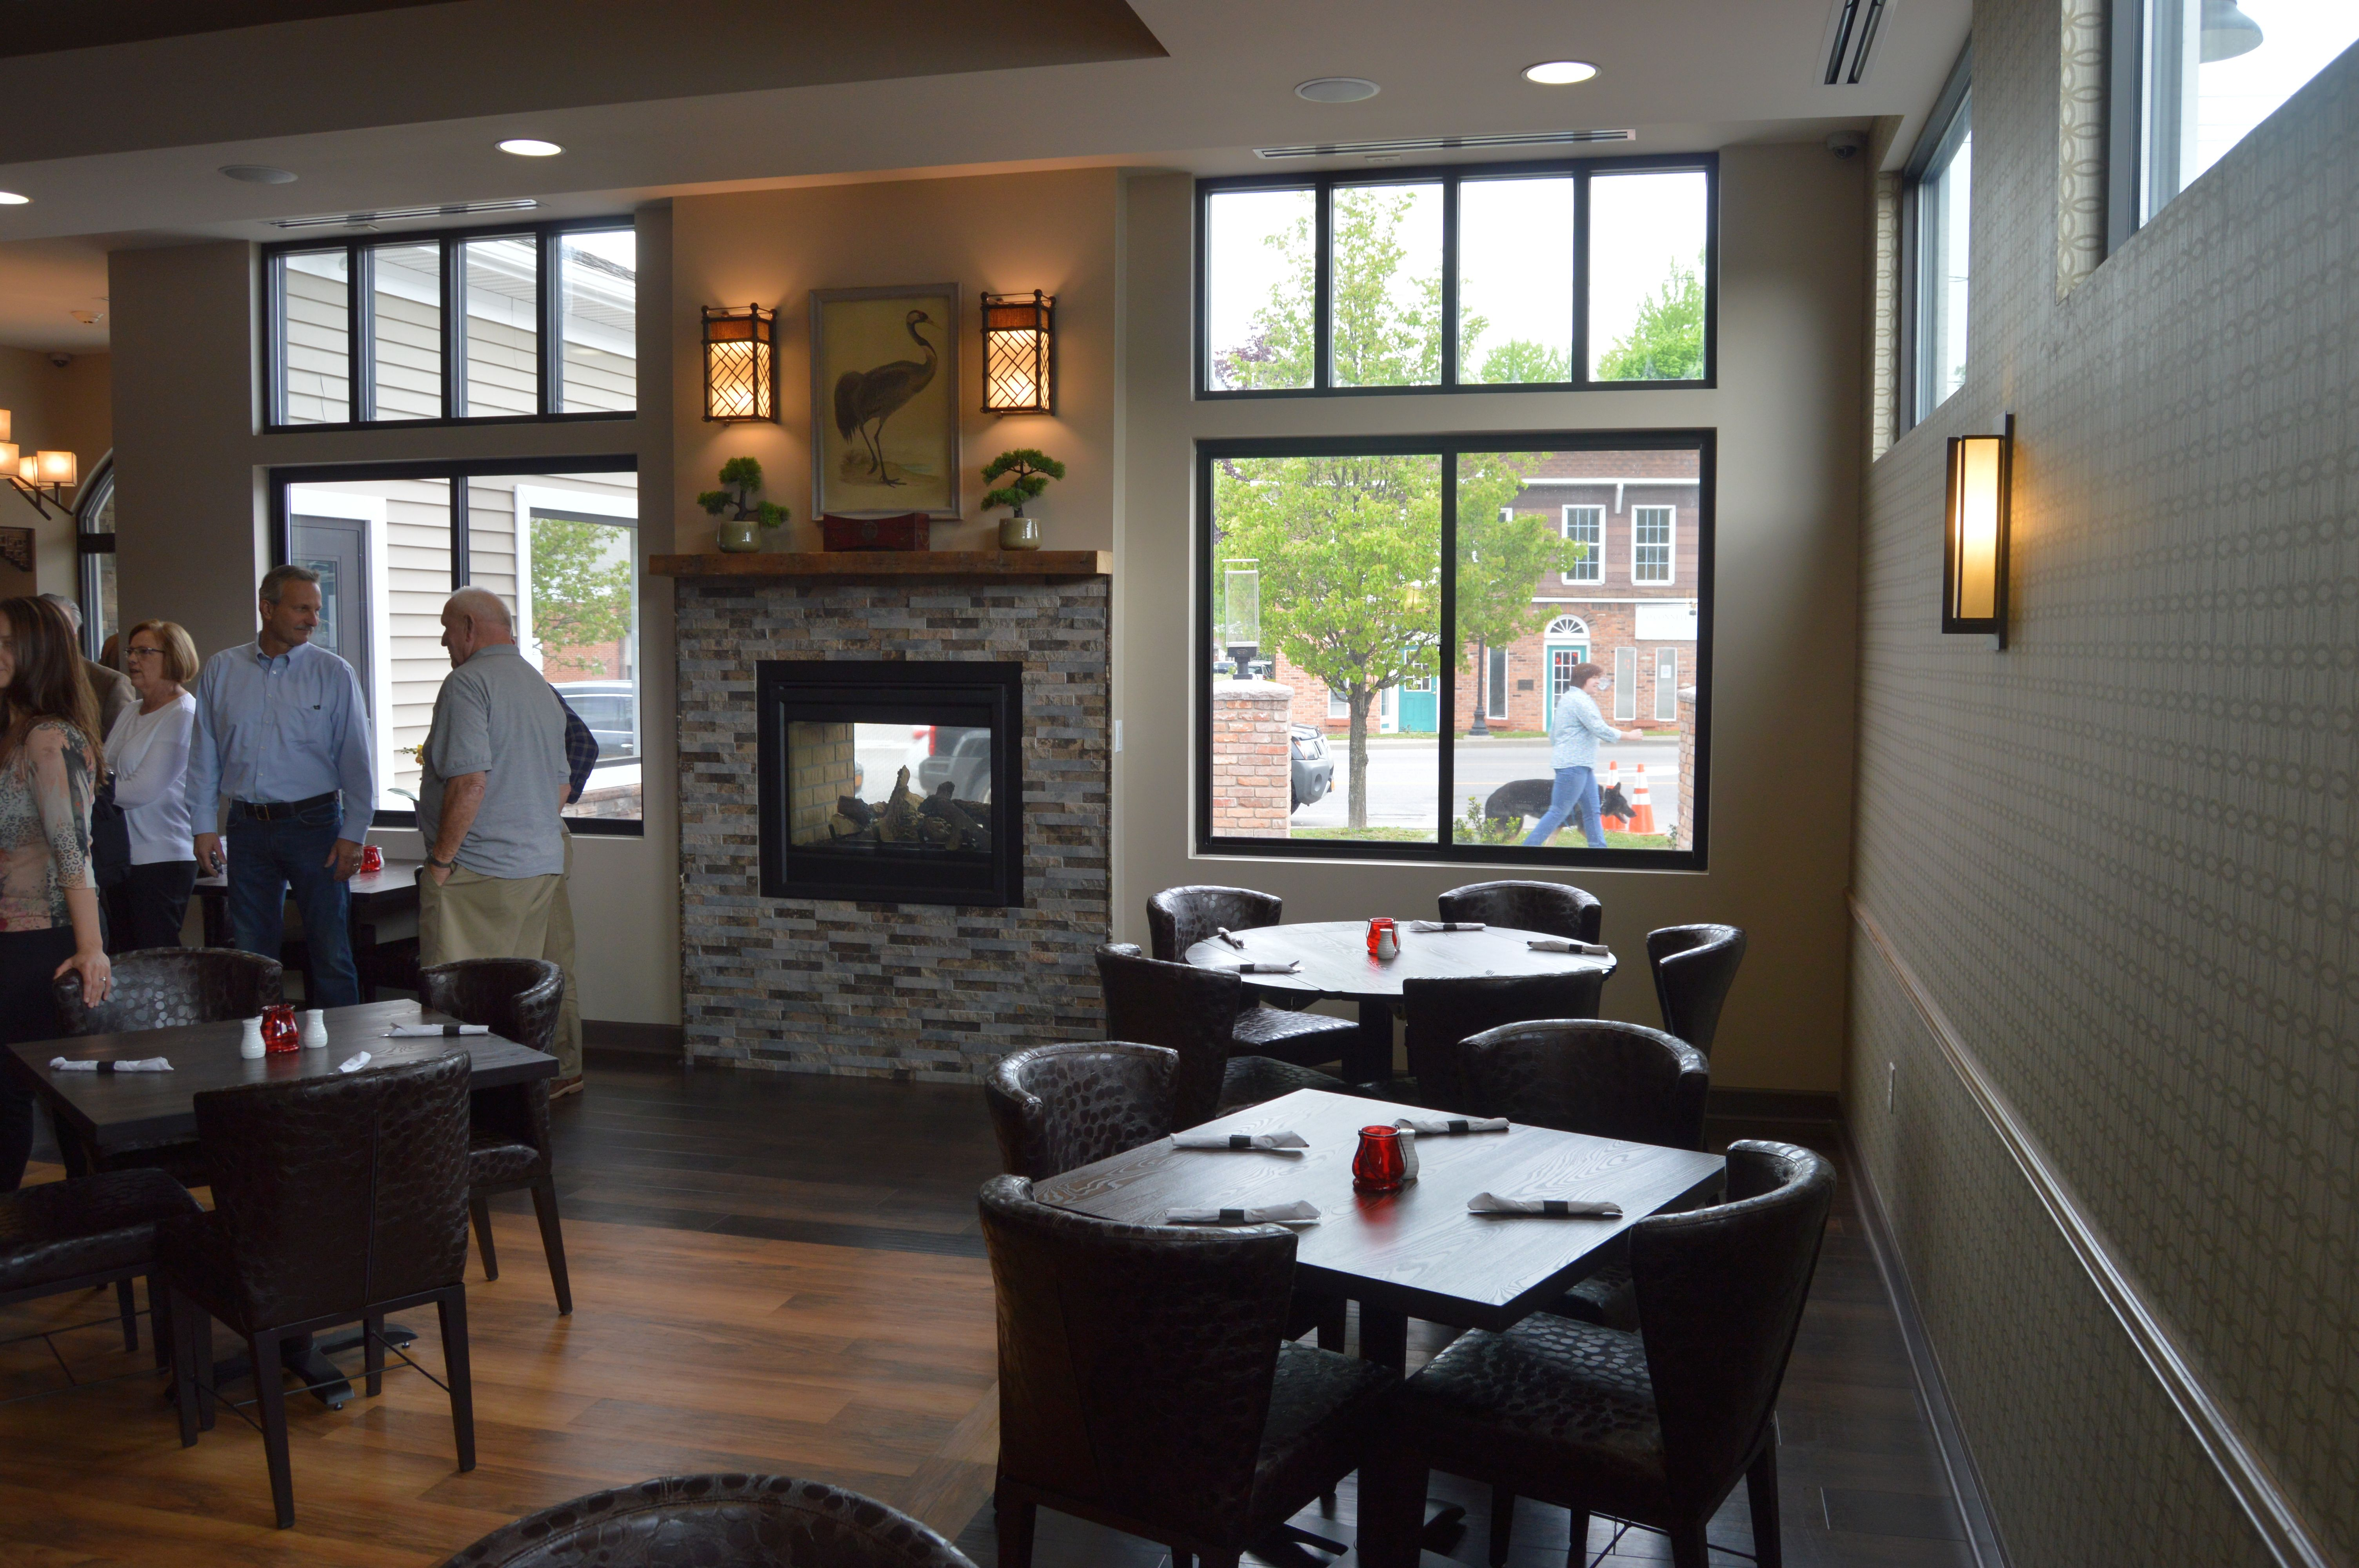 Main Street Eatery Named One Of The Top Ranked Burger